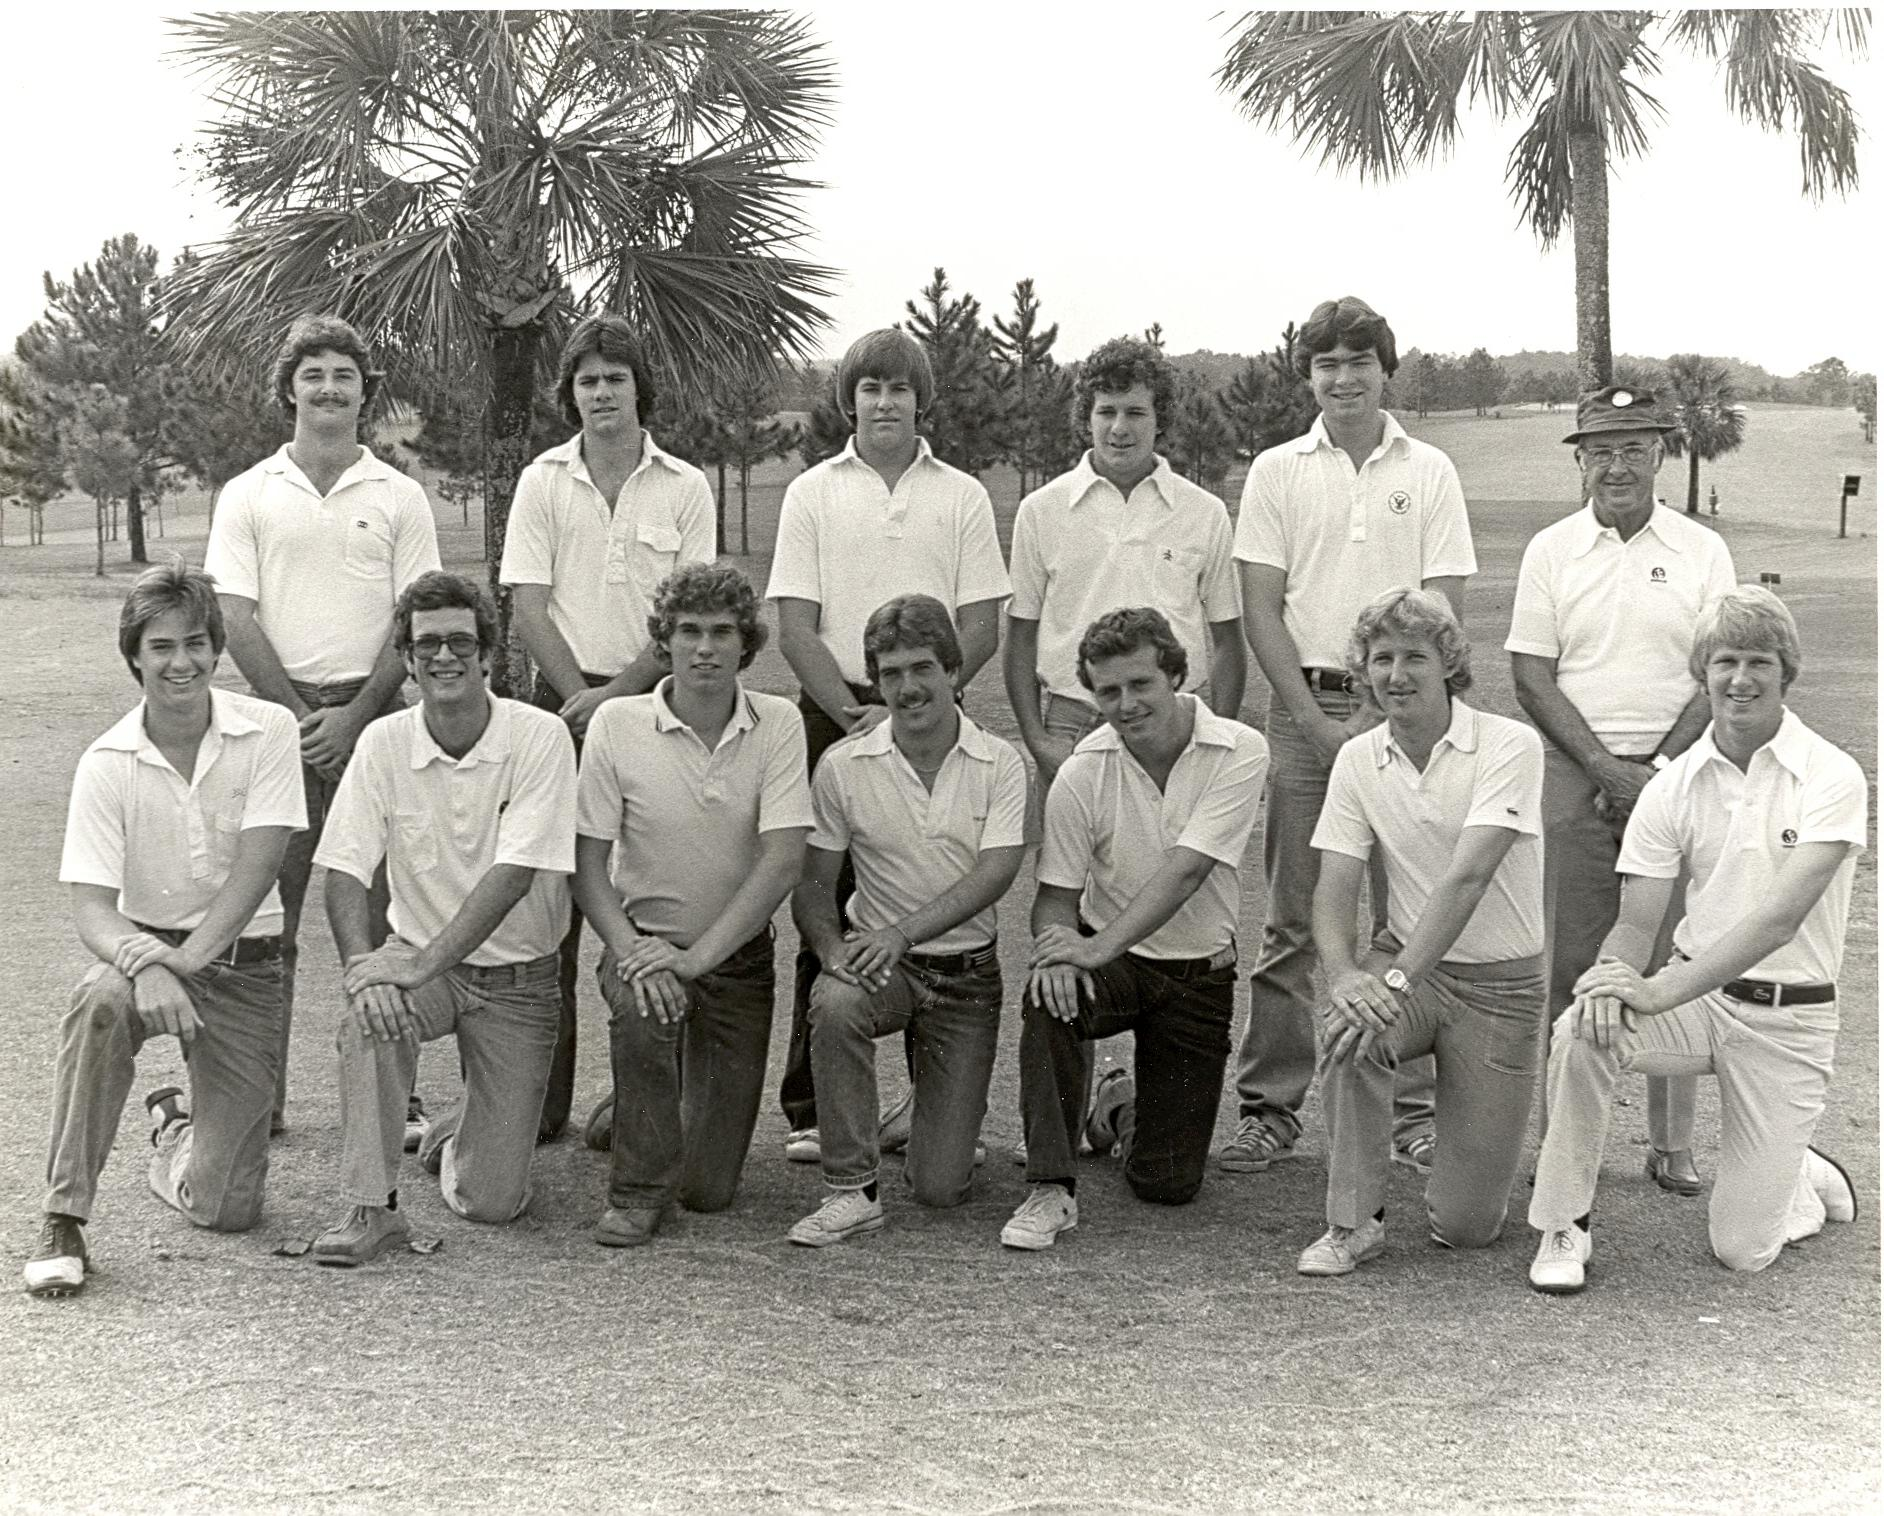 University of florida dating 1977